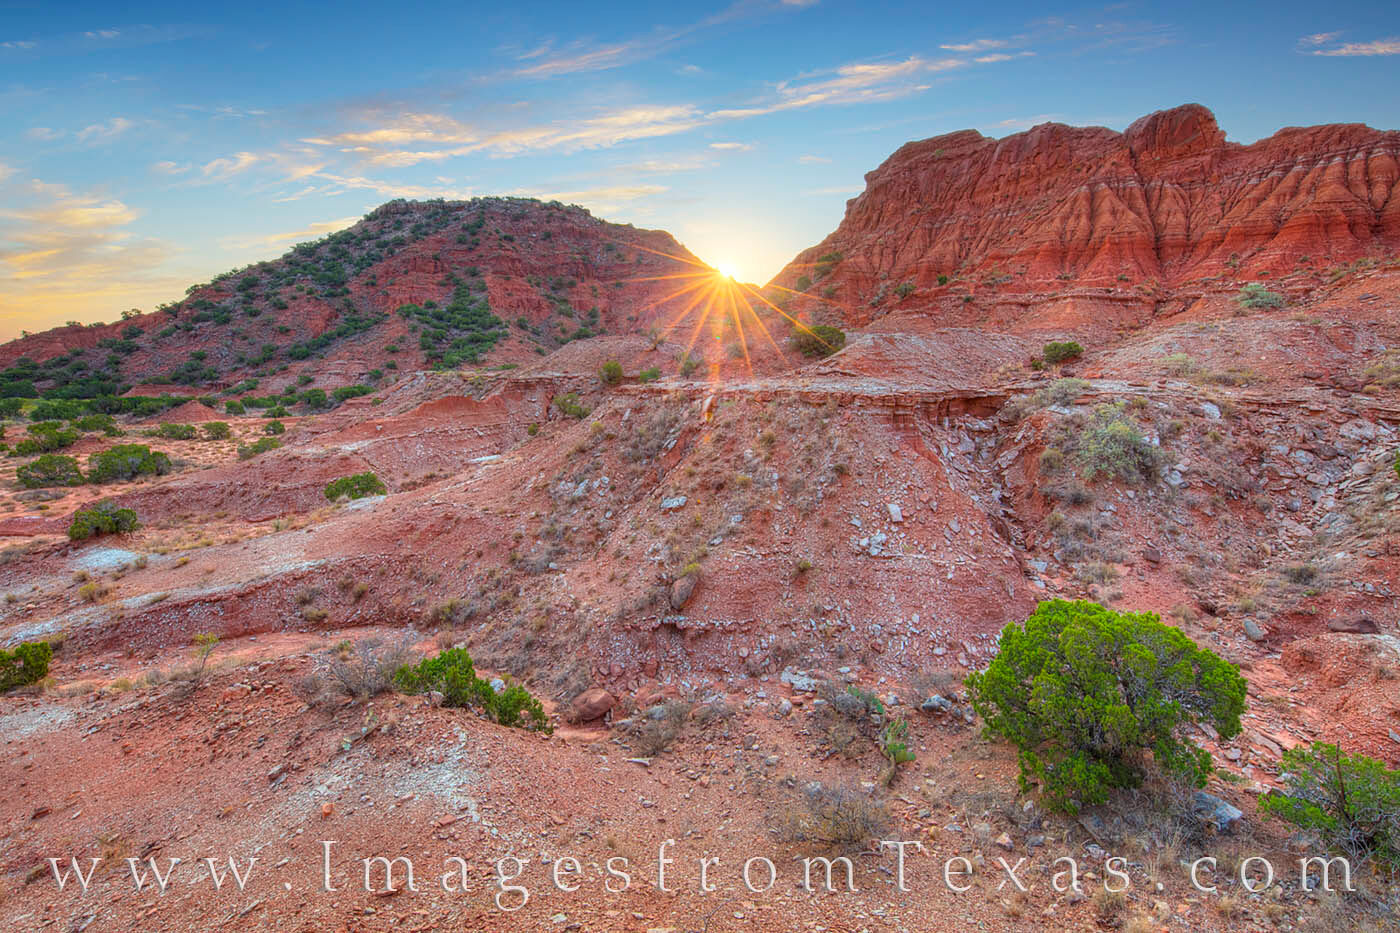 Far away from the big city (or any city), Caprock Canyon is a beautiful and rugged place to explore. This sunrise image was taken...